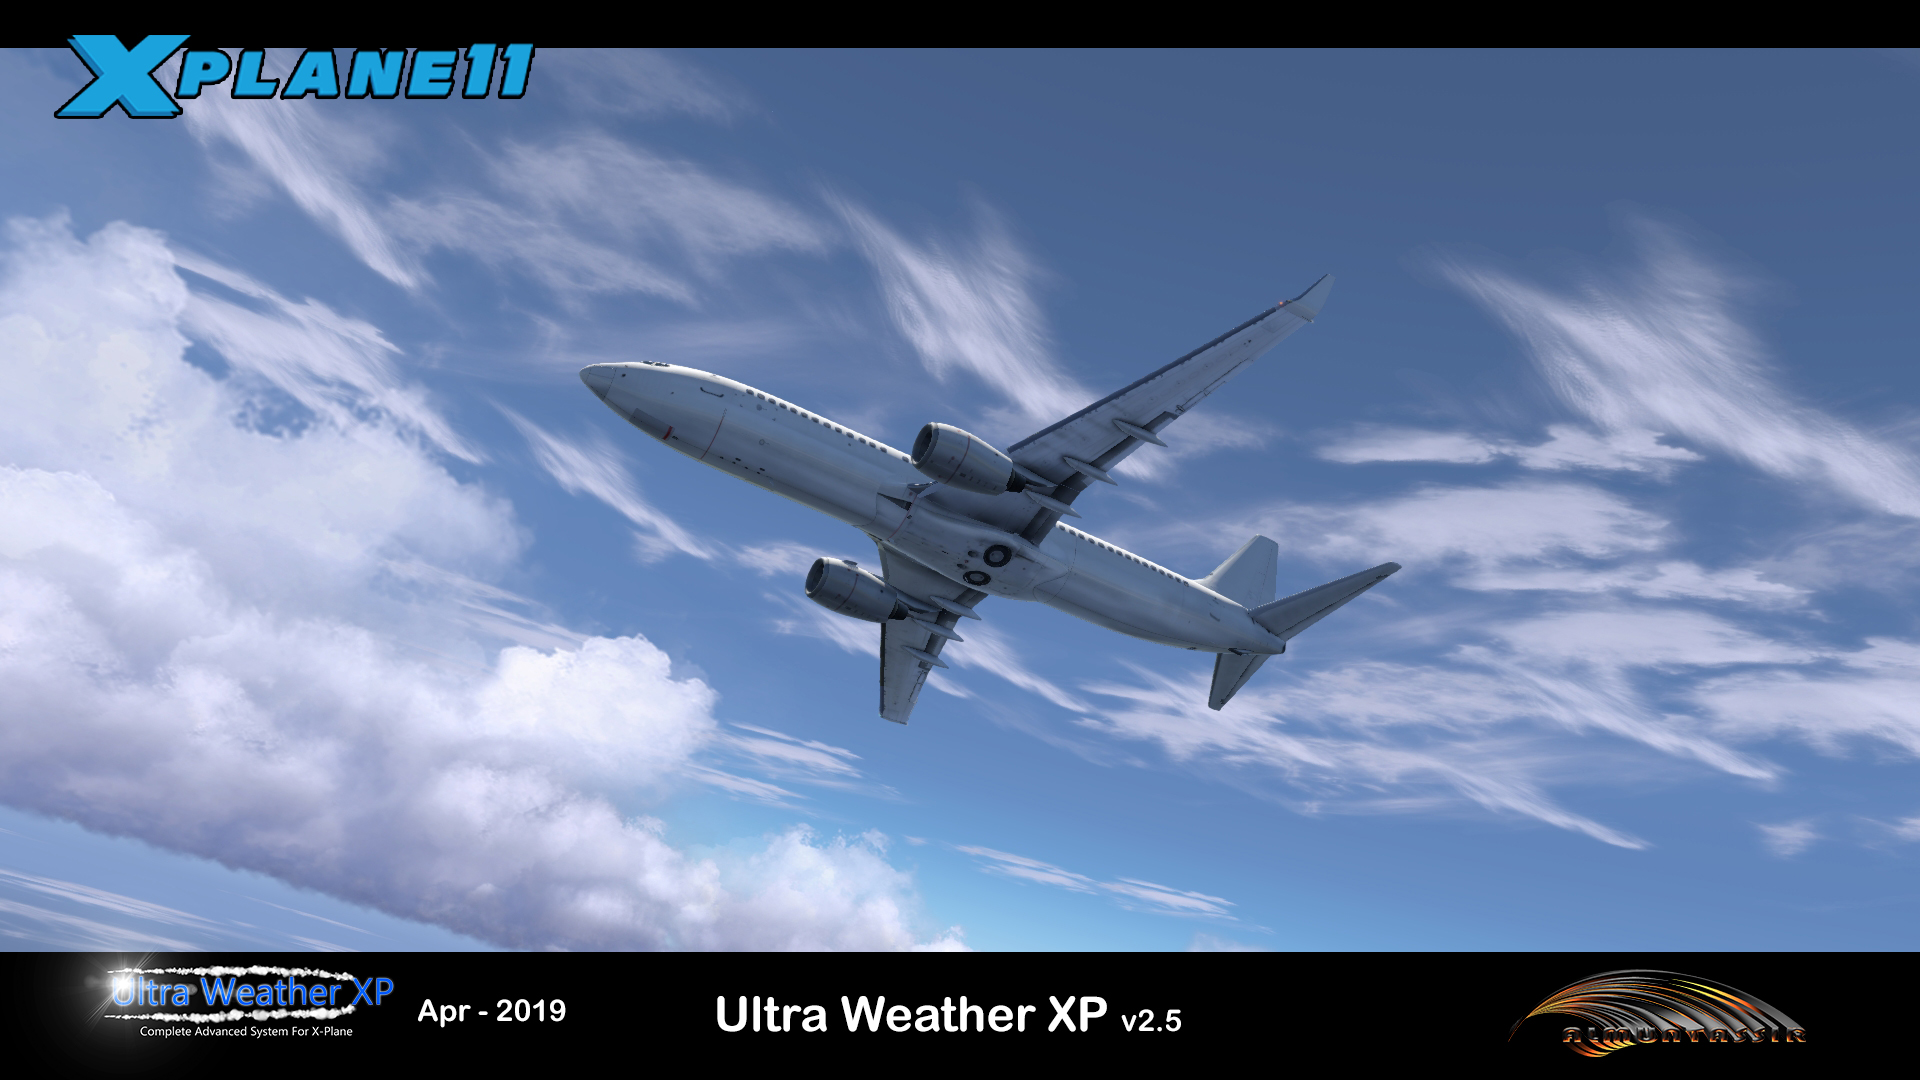 AL MUNTASSIR - ULTRA WEATHER X-PLANE 11